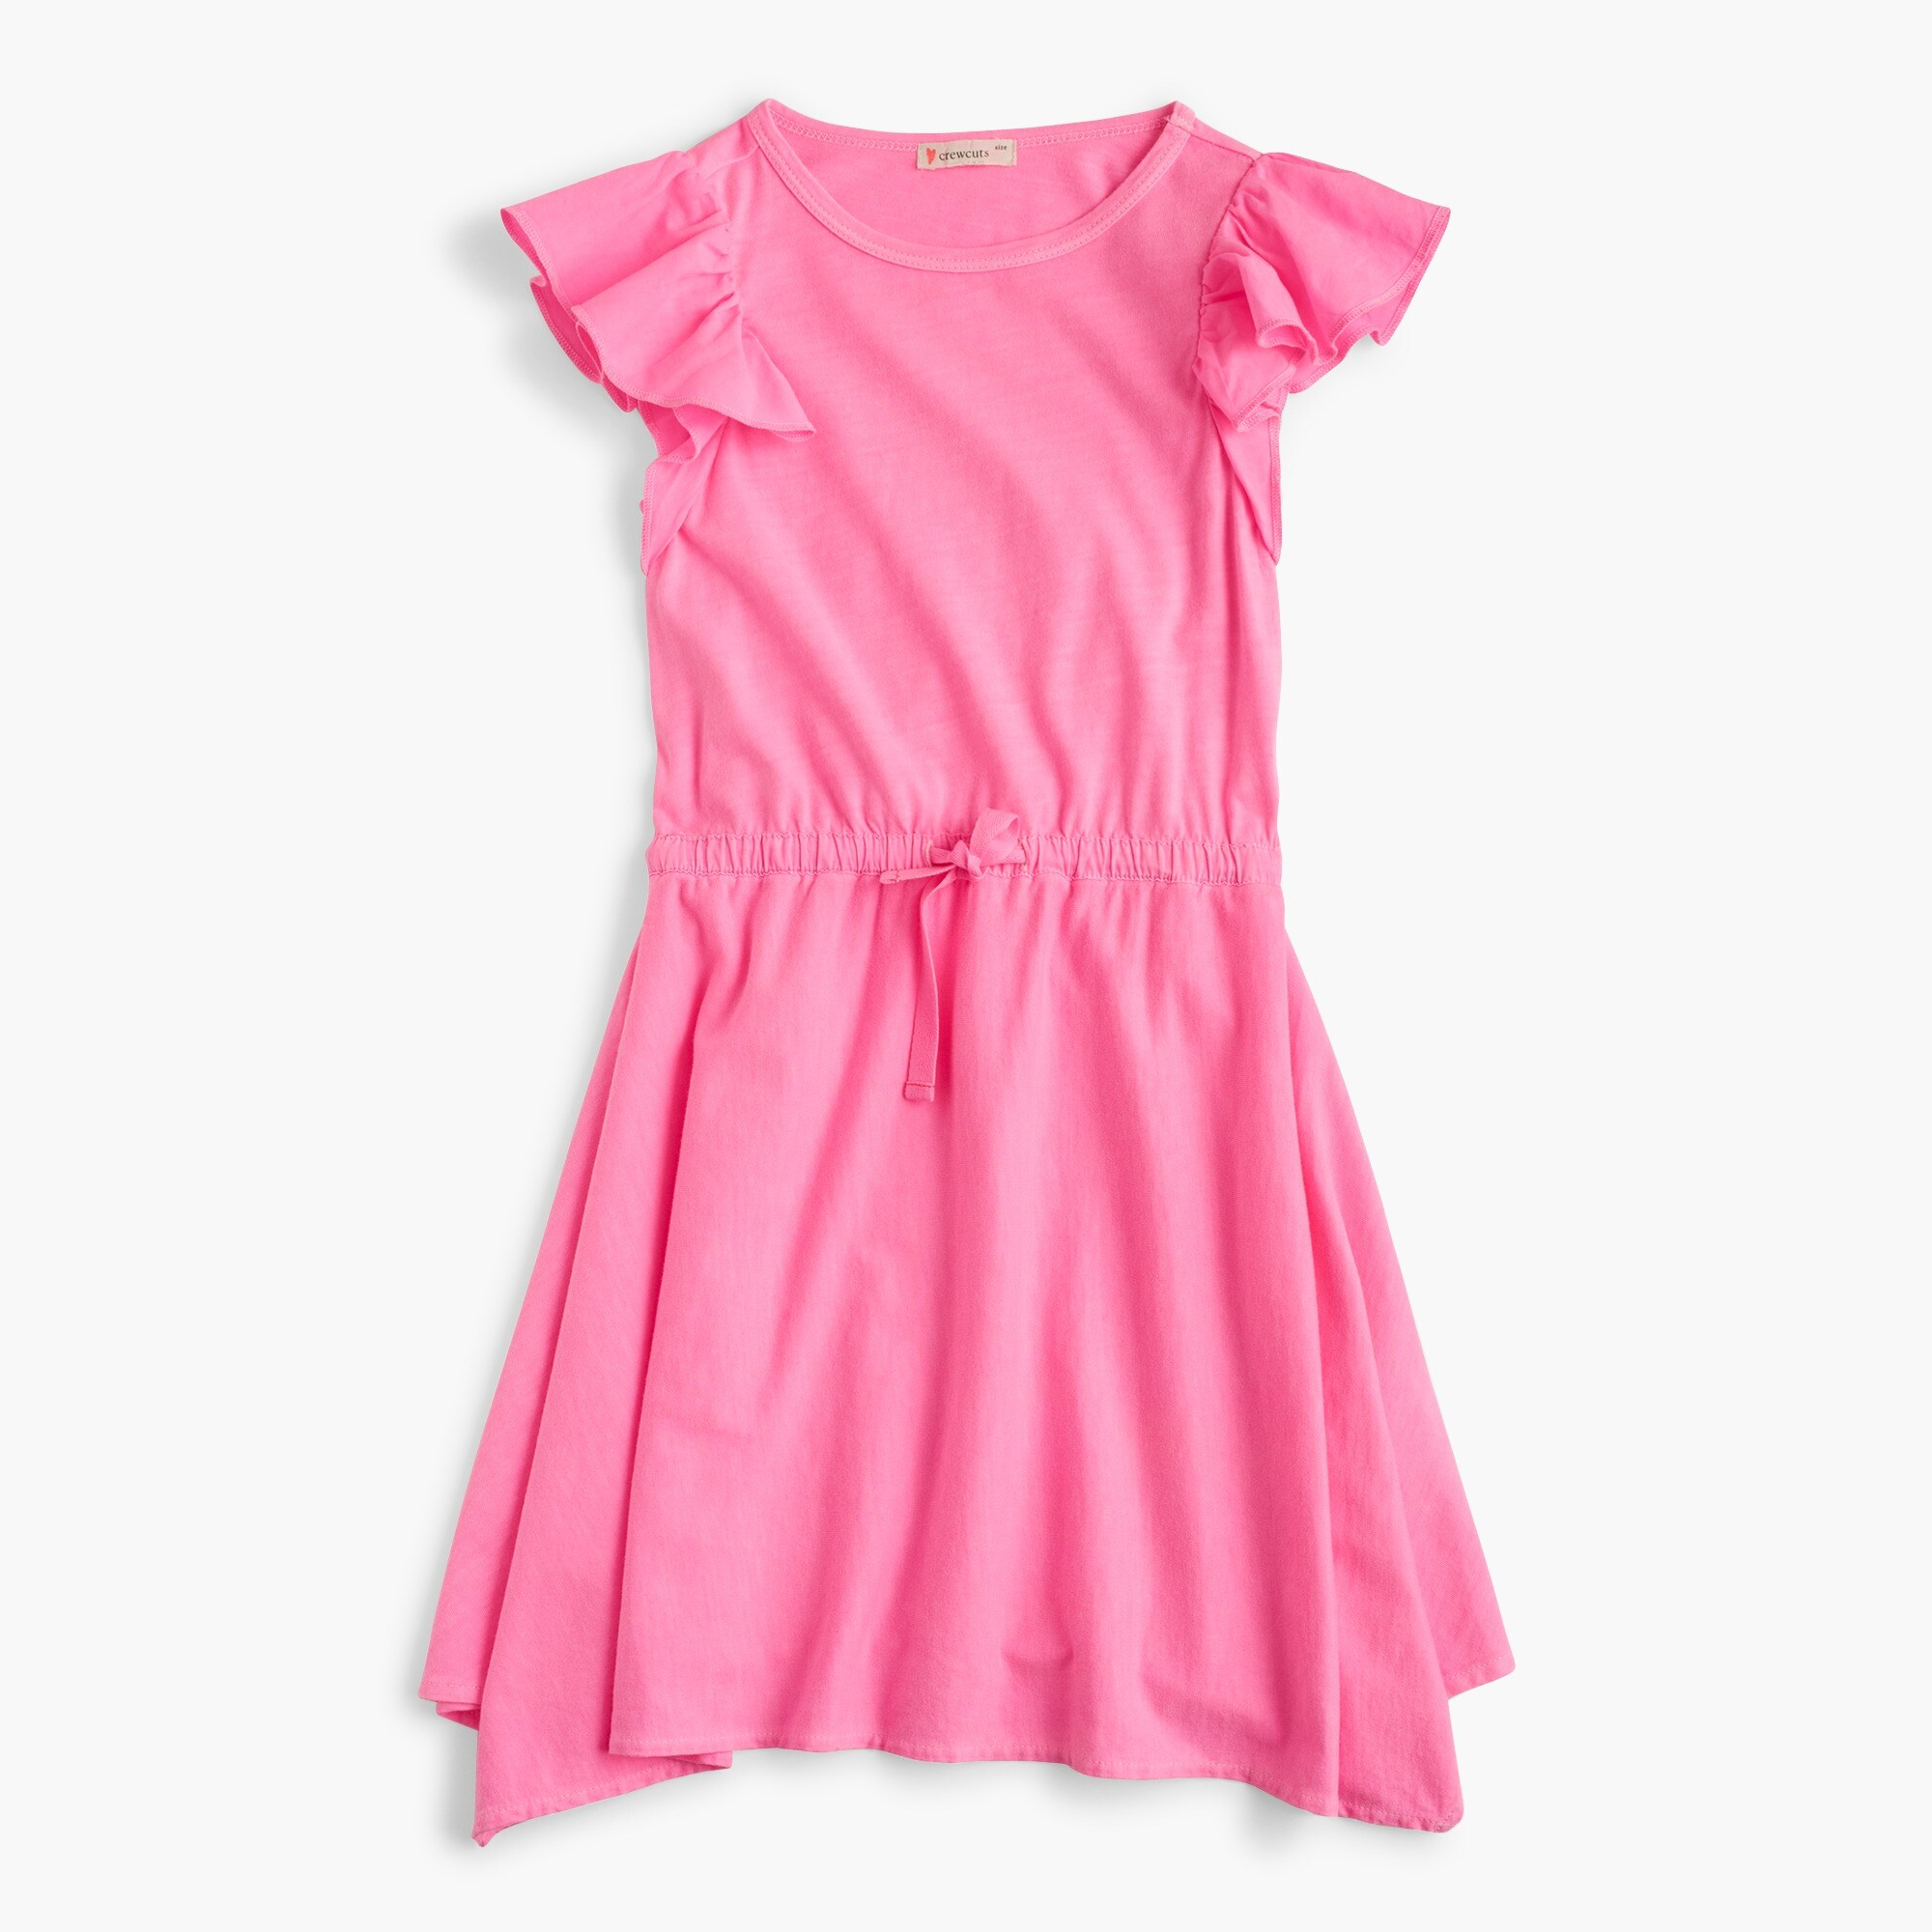 Girls' flutter-sleeve handkerchief dress